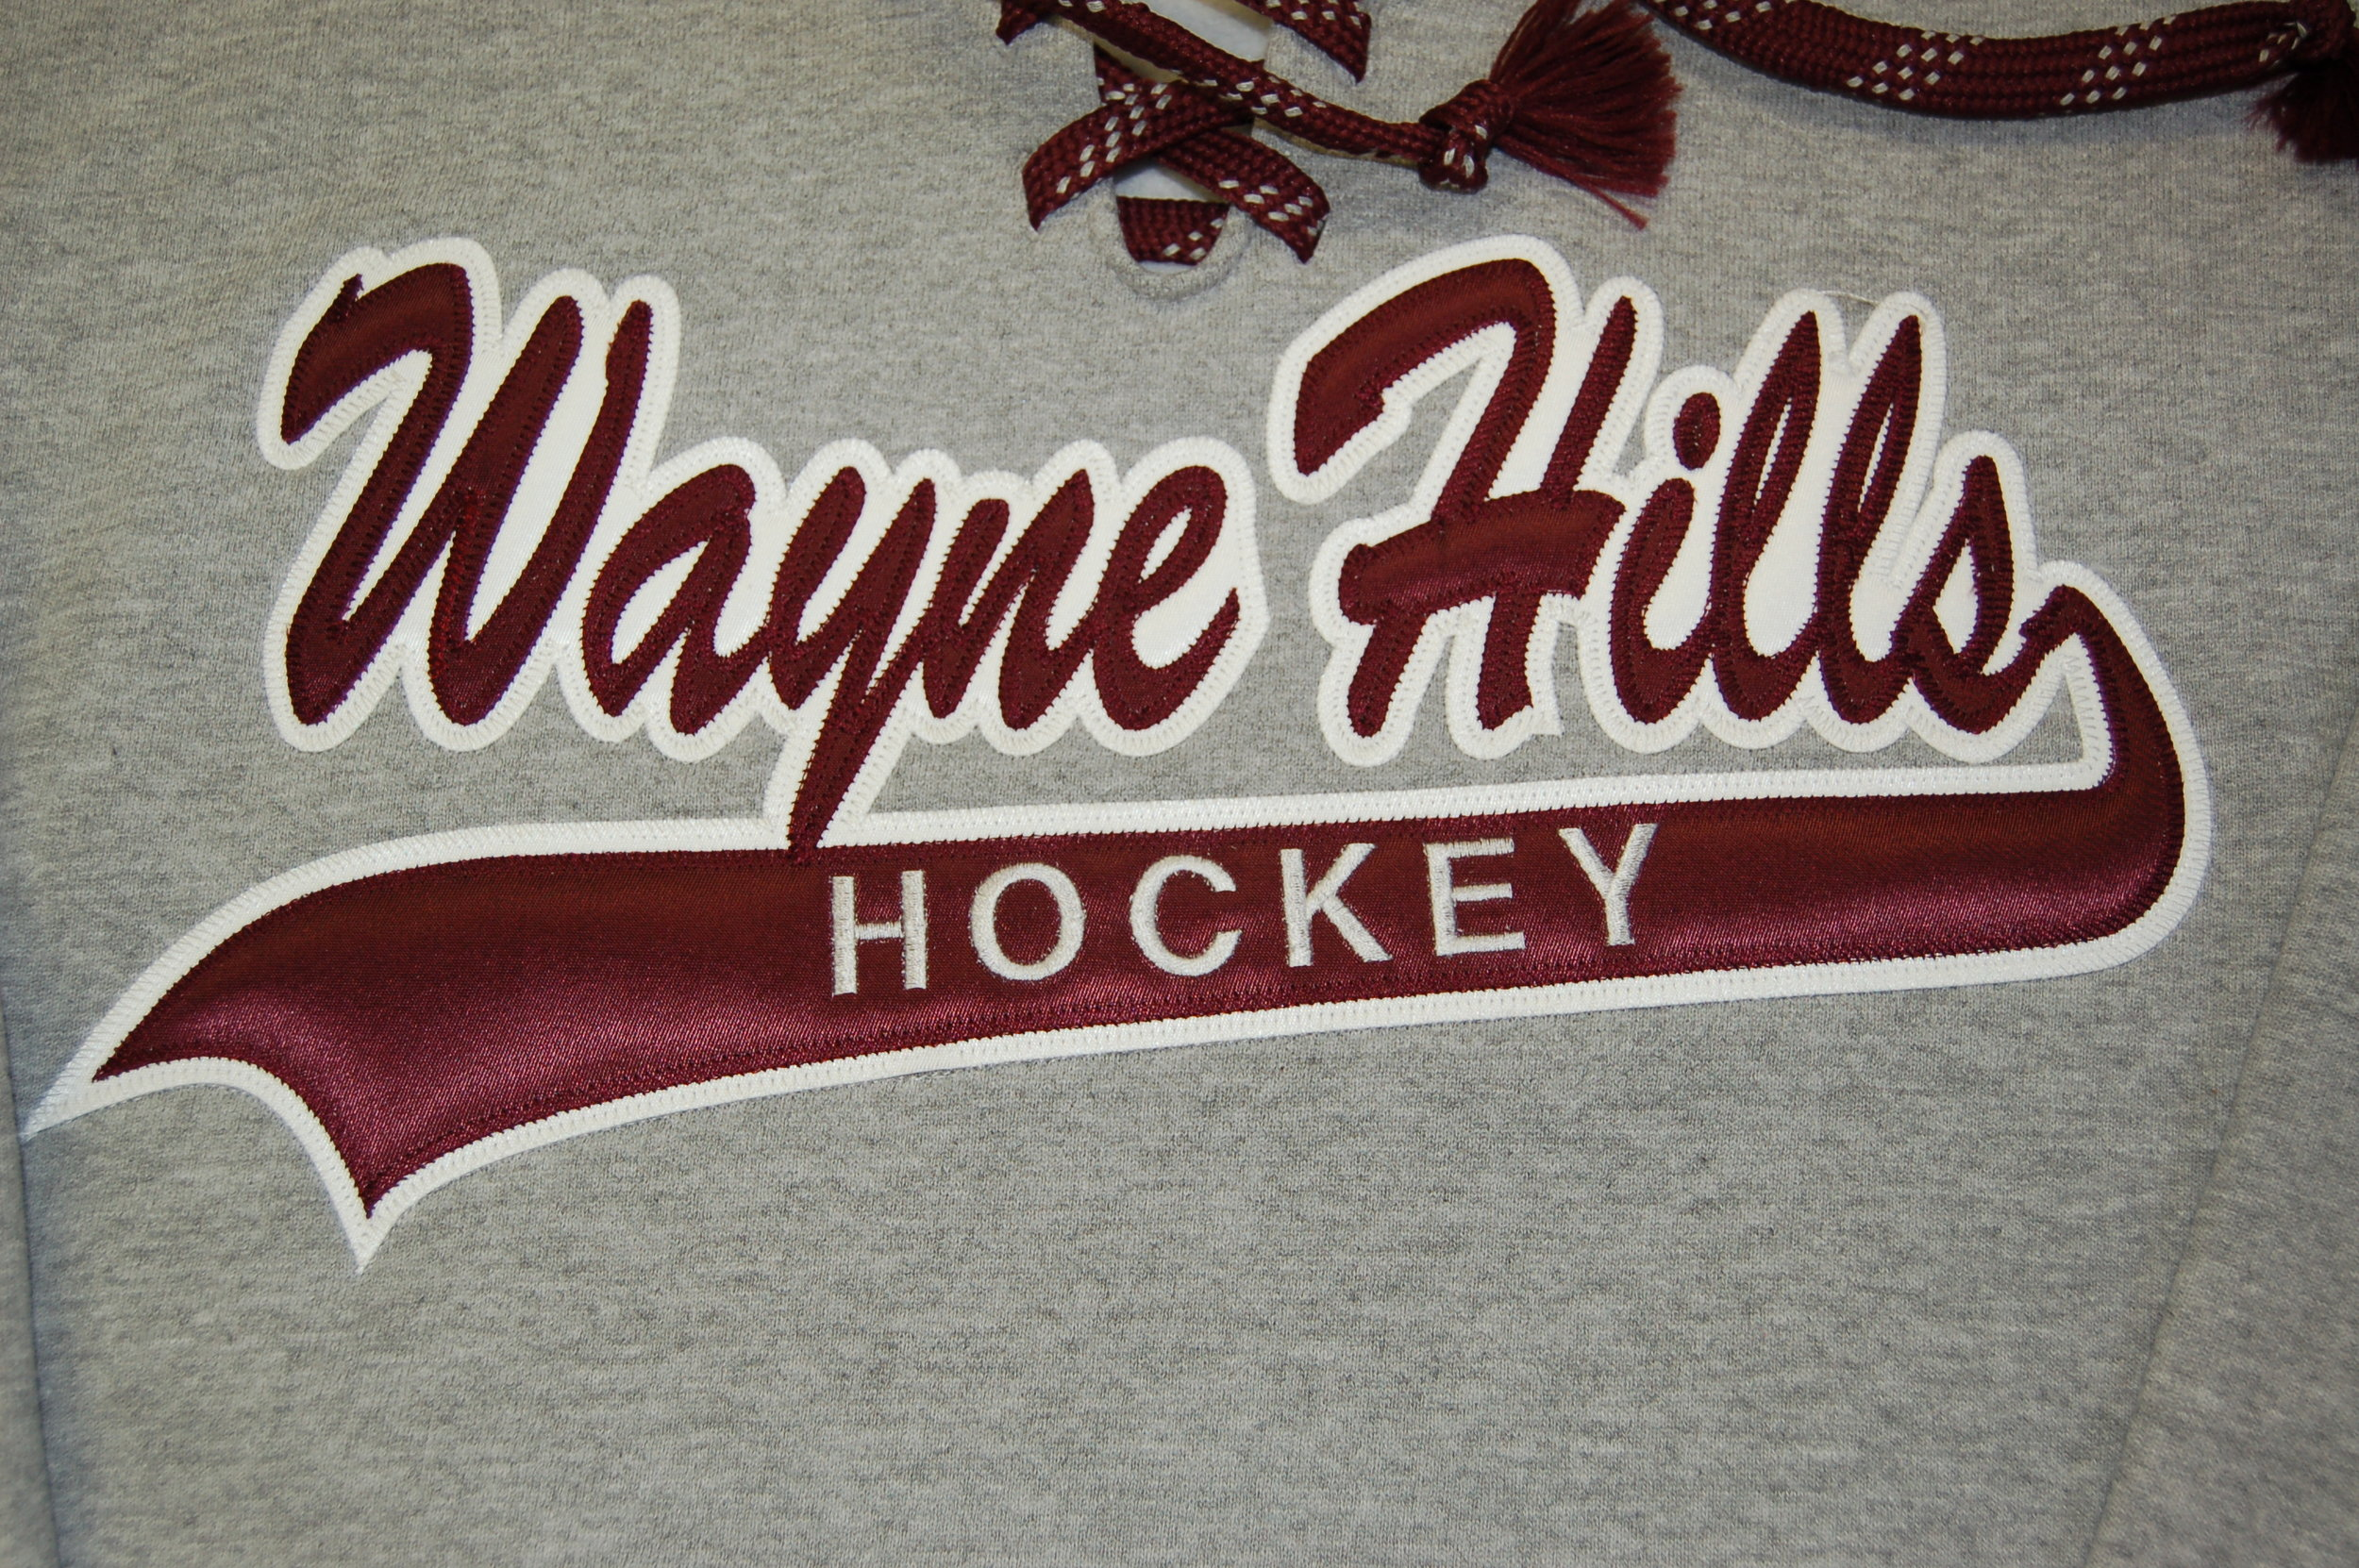 WH hockey lace-up hoodie 3.JPG